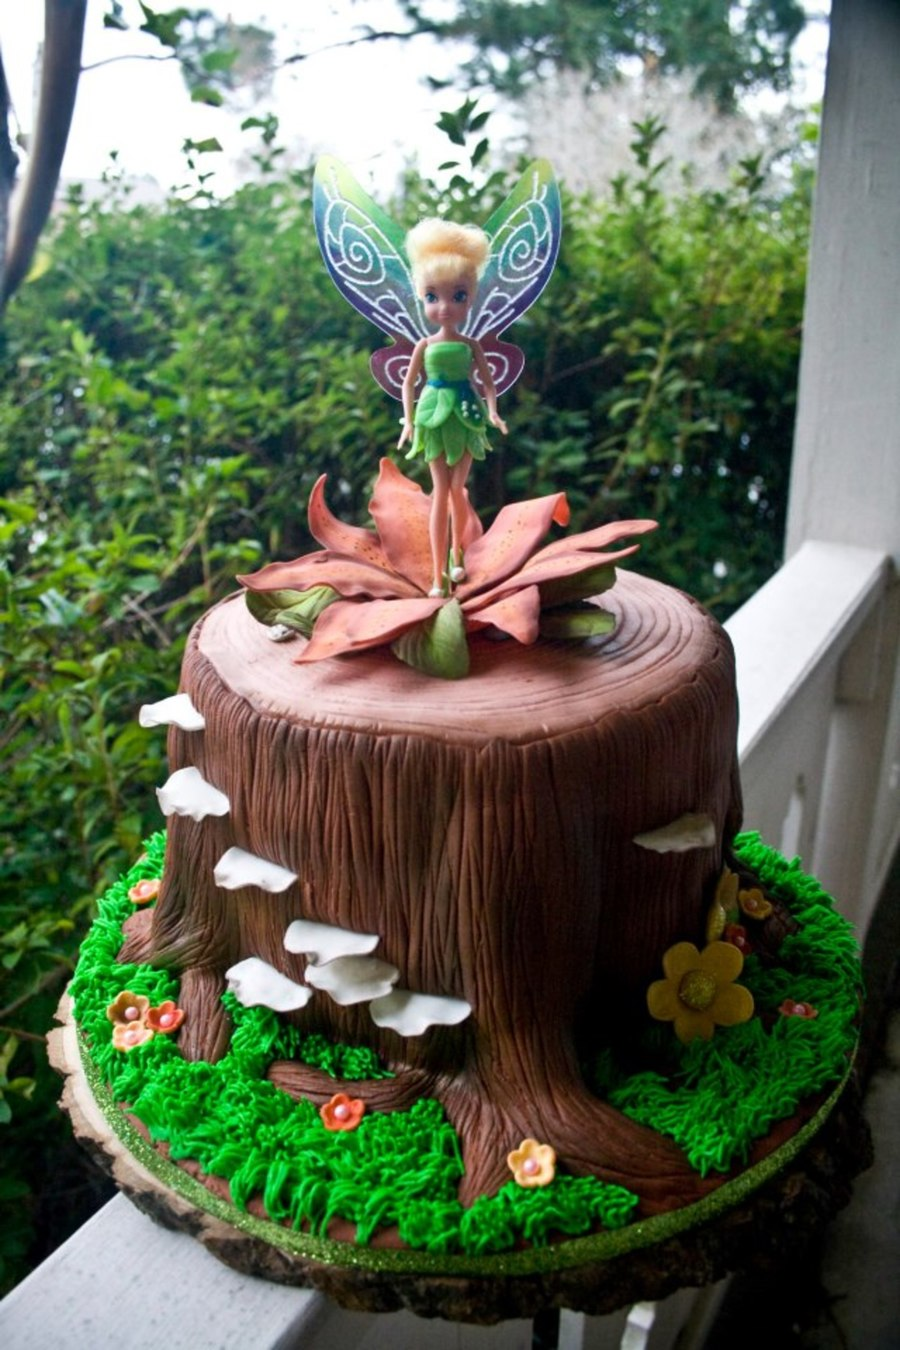 Tinkerbell On A Tree Stump Chocolate Cake With Vanilla